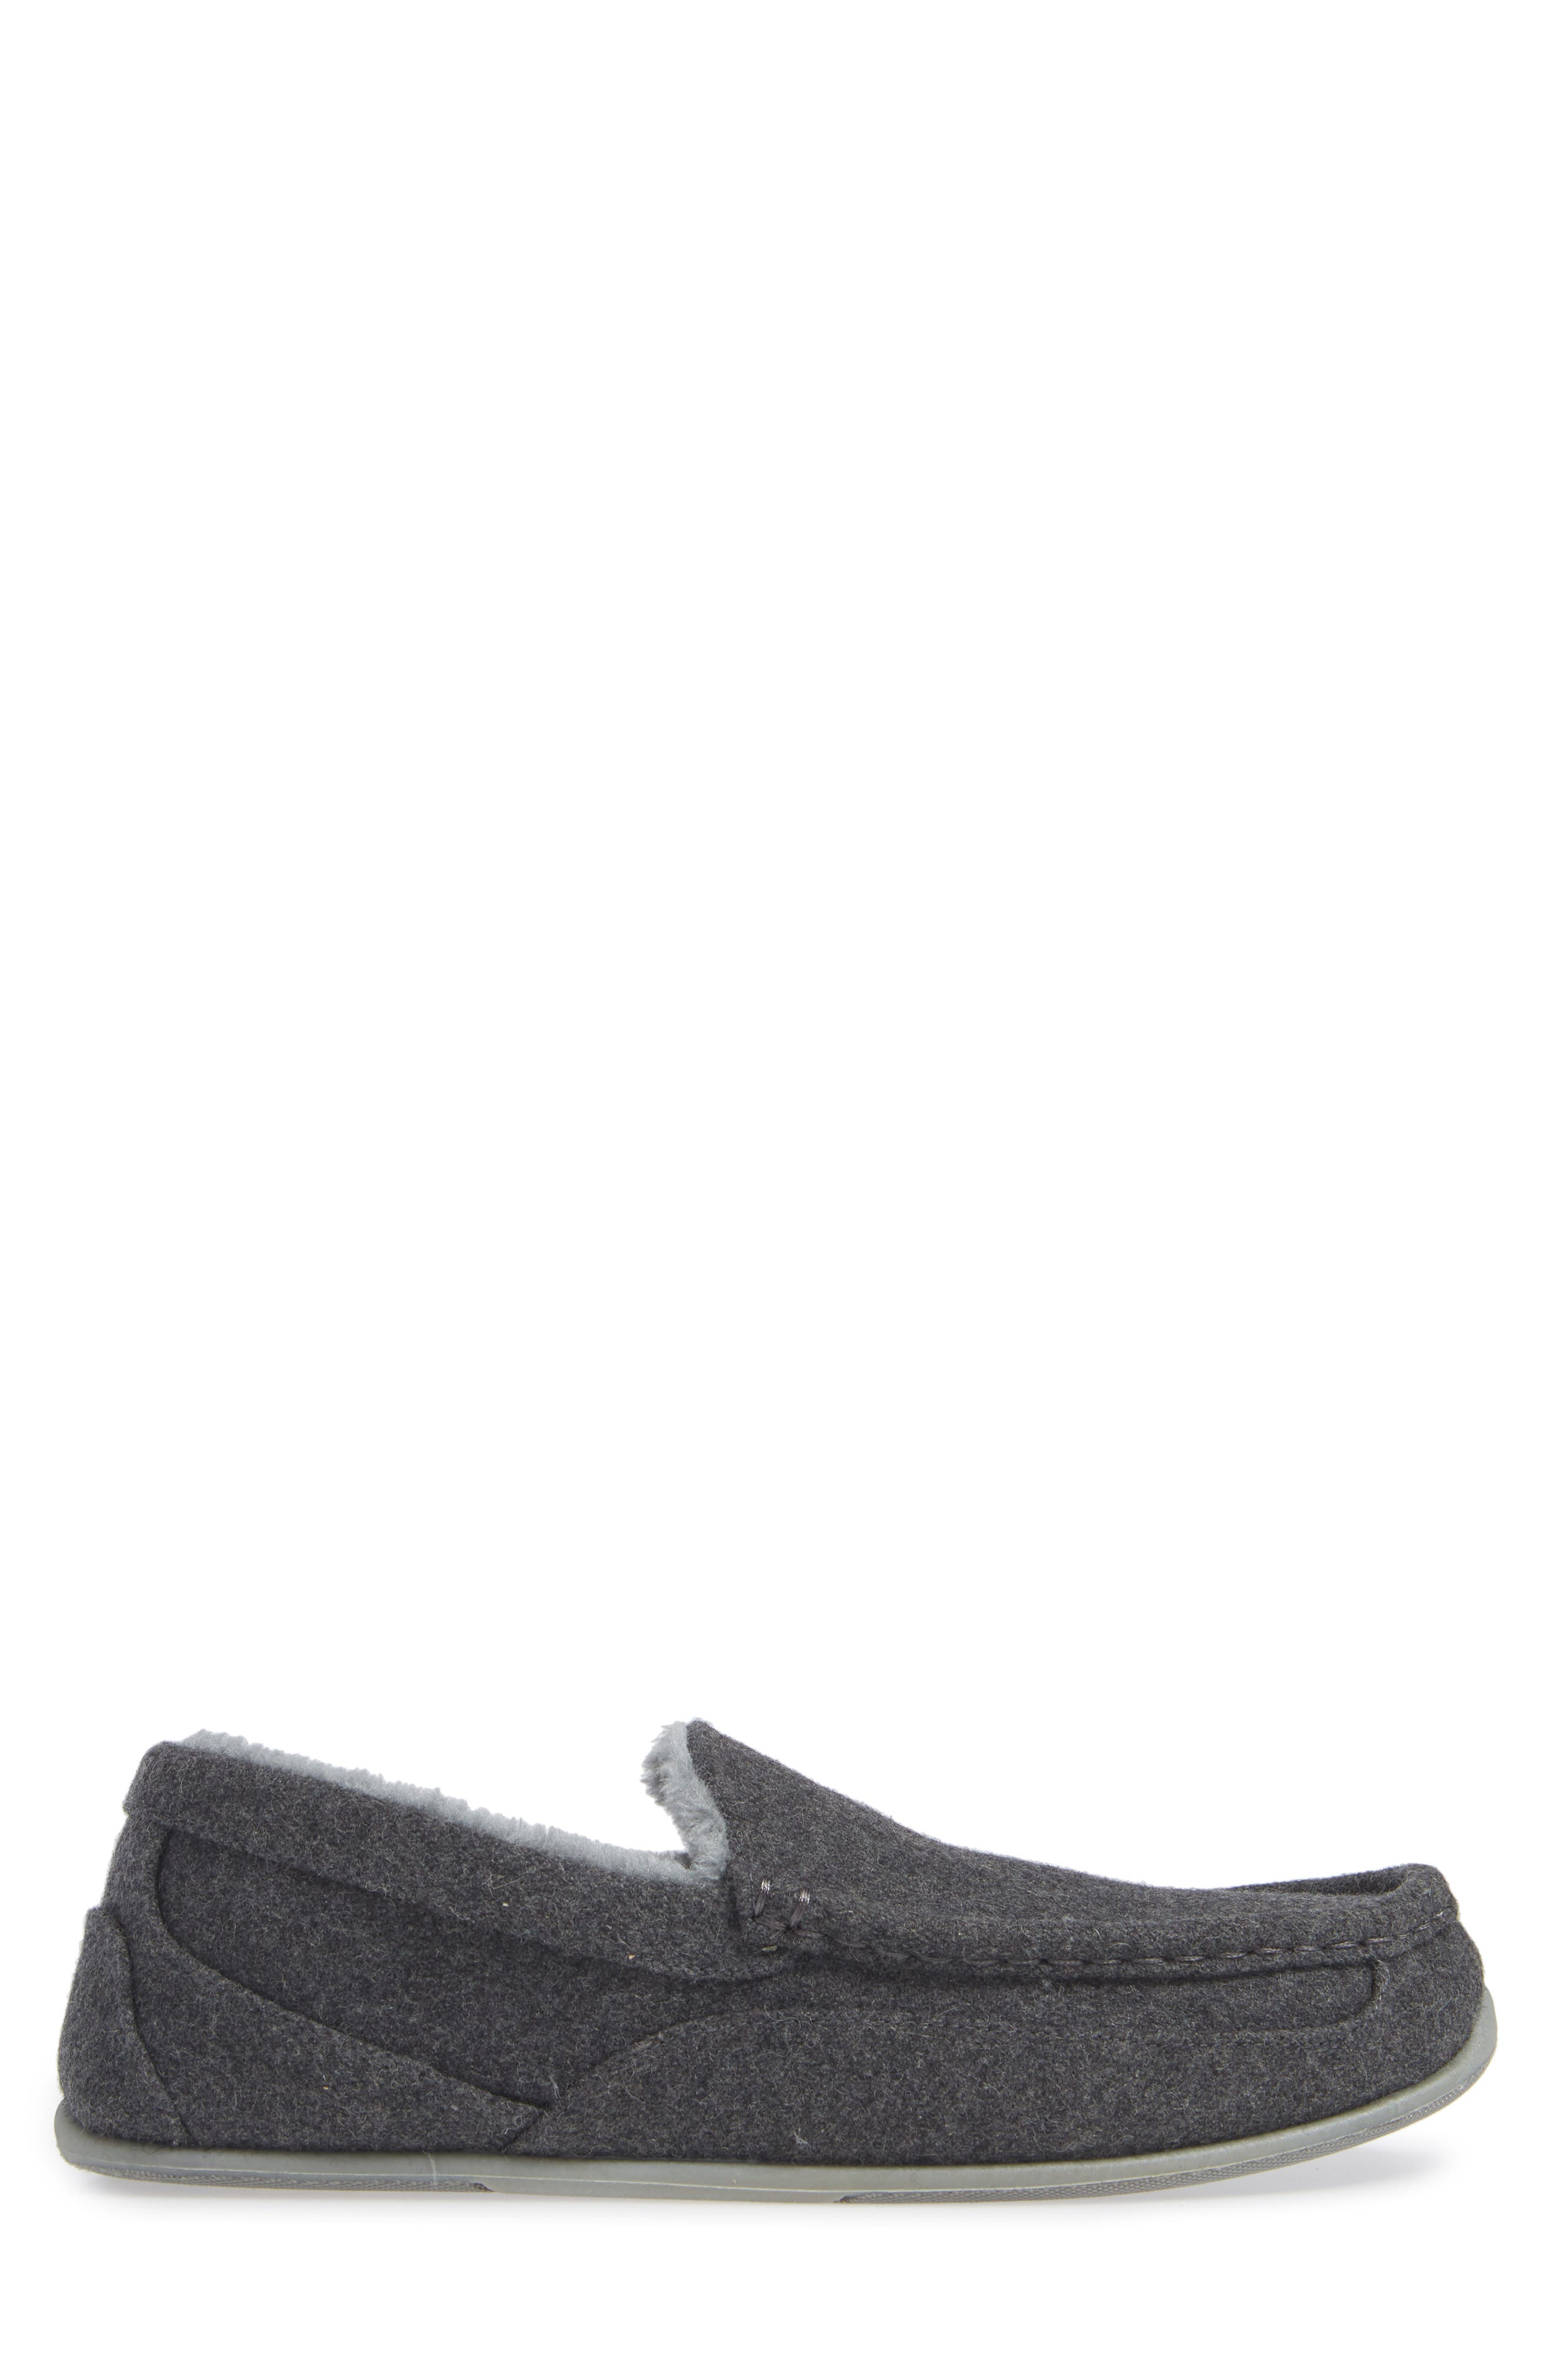 Spun Slipper,                             Alternate thumbnail 3, color,                             DARK GREY